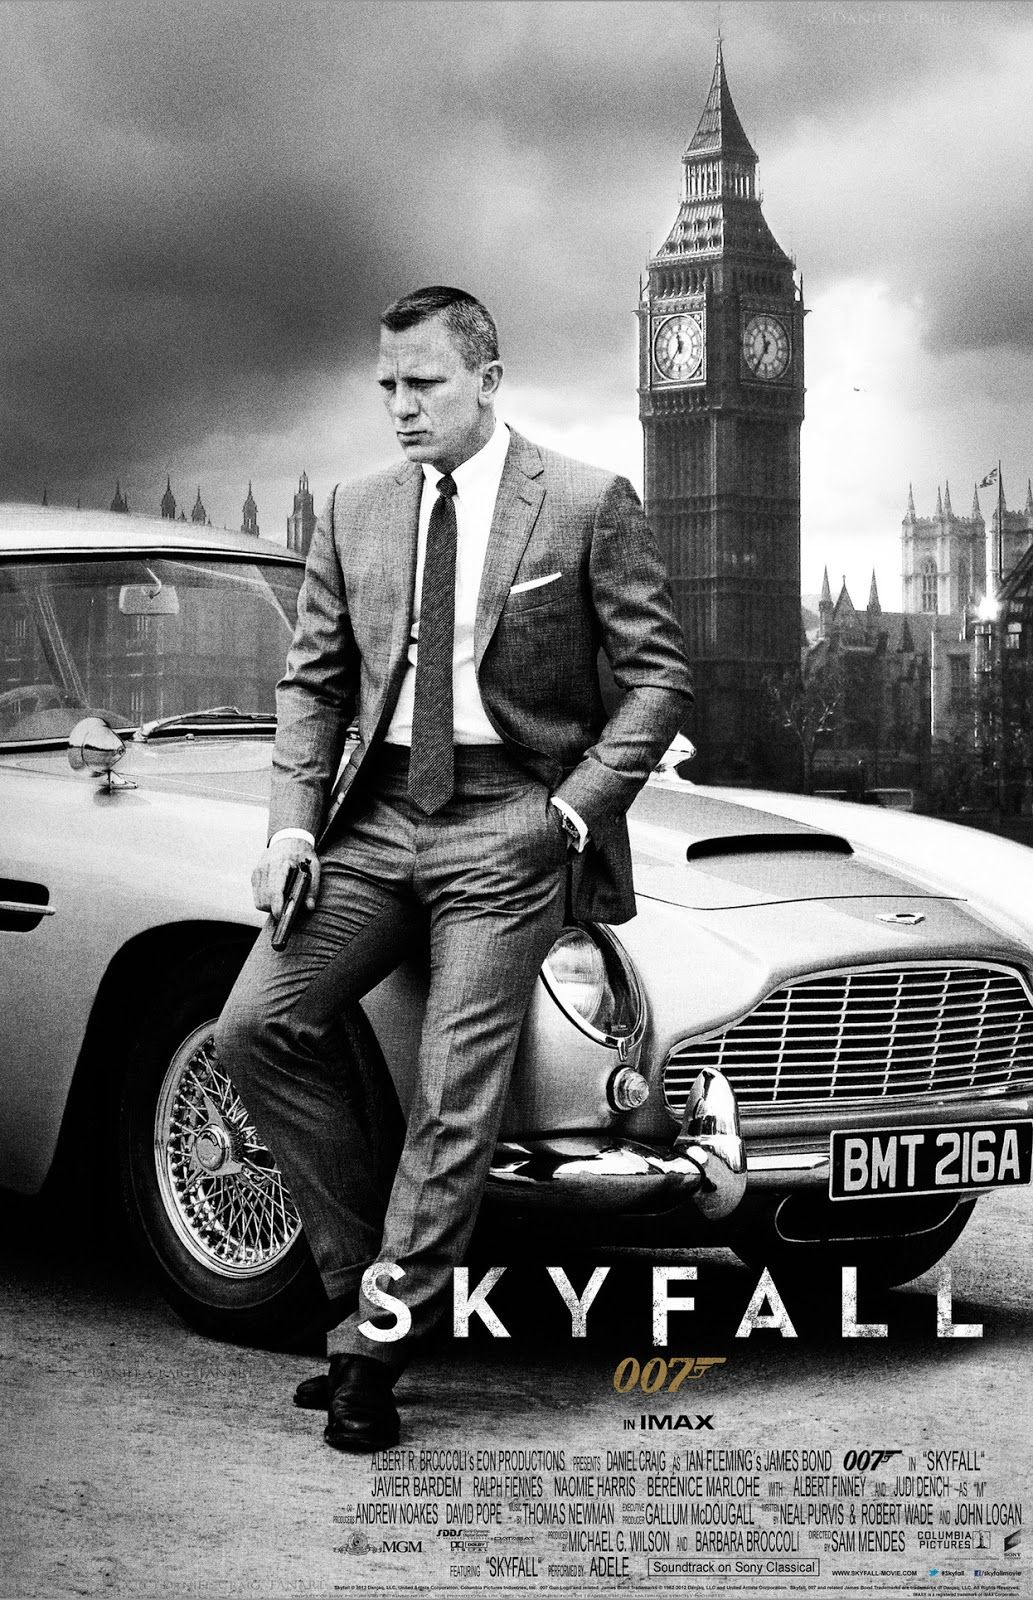 skyfall 2012 bond s loyalty to m is tested when her past comes